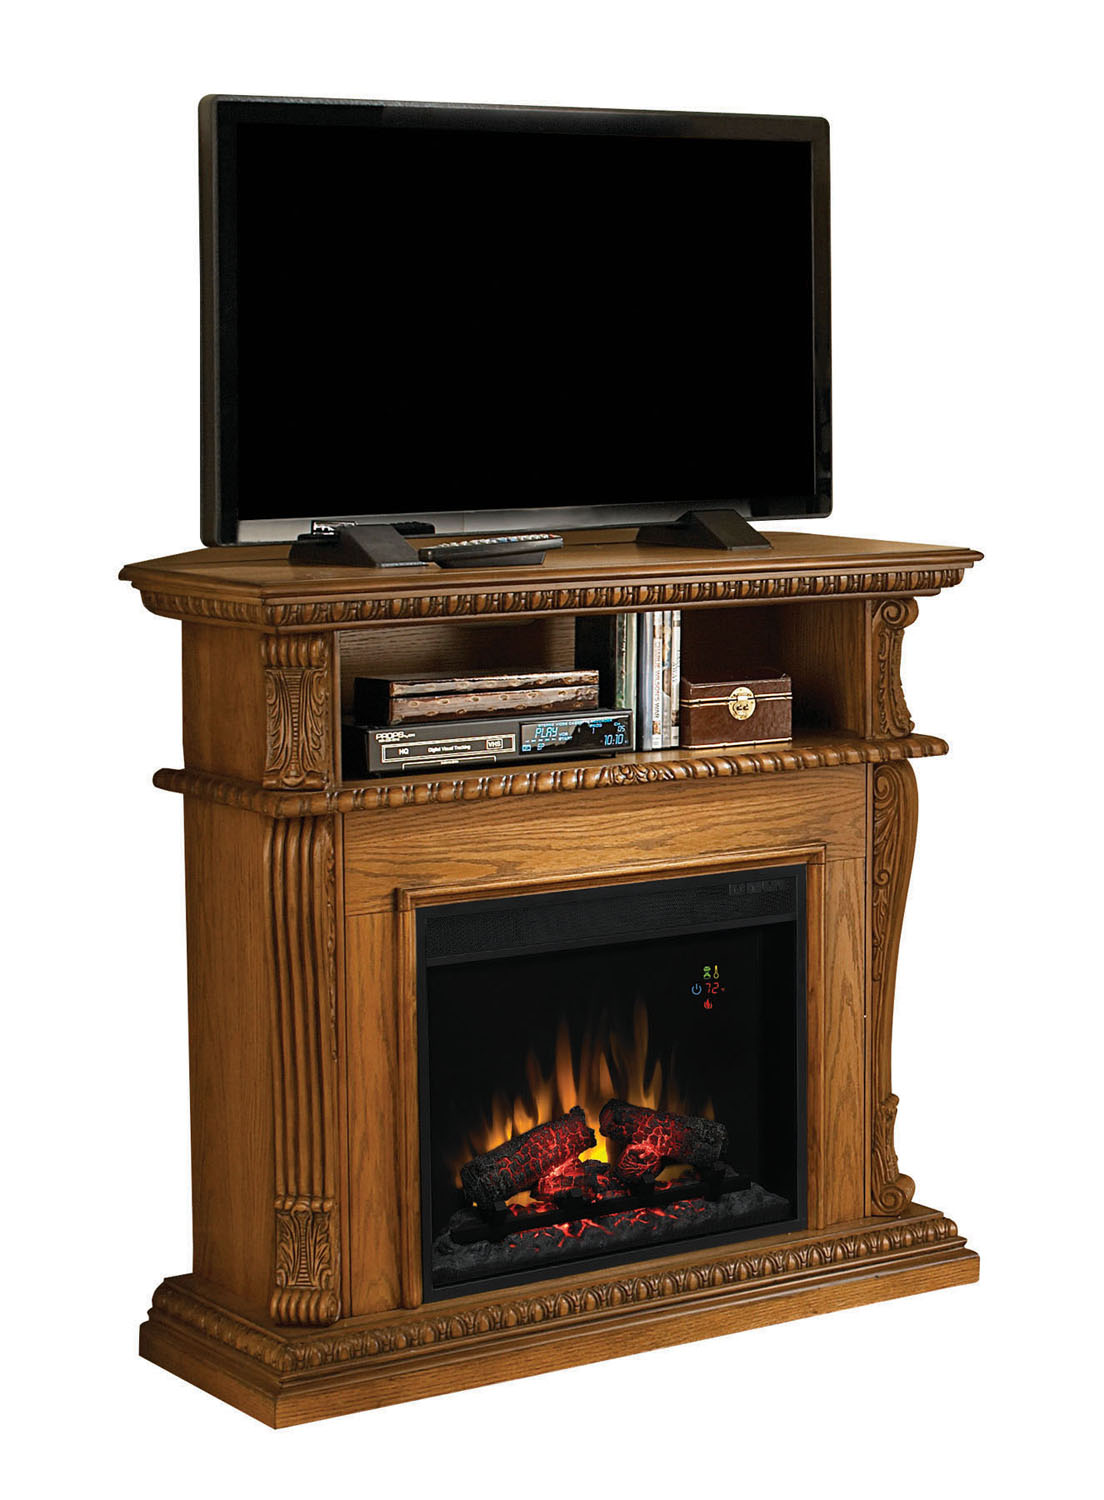 Classicflame Corinth Electric Fireplace W 23 Infrared Quartz